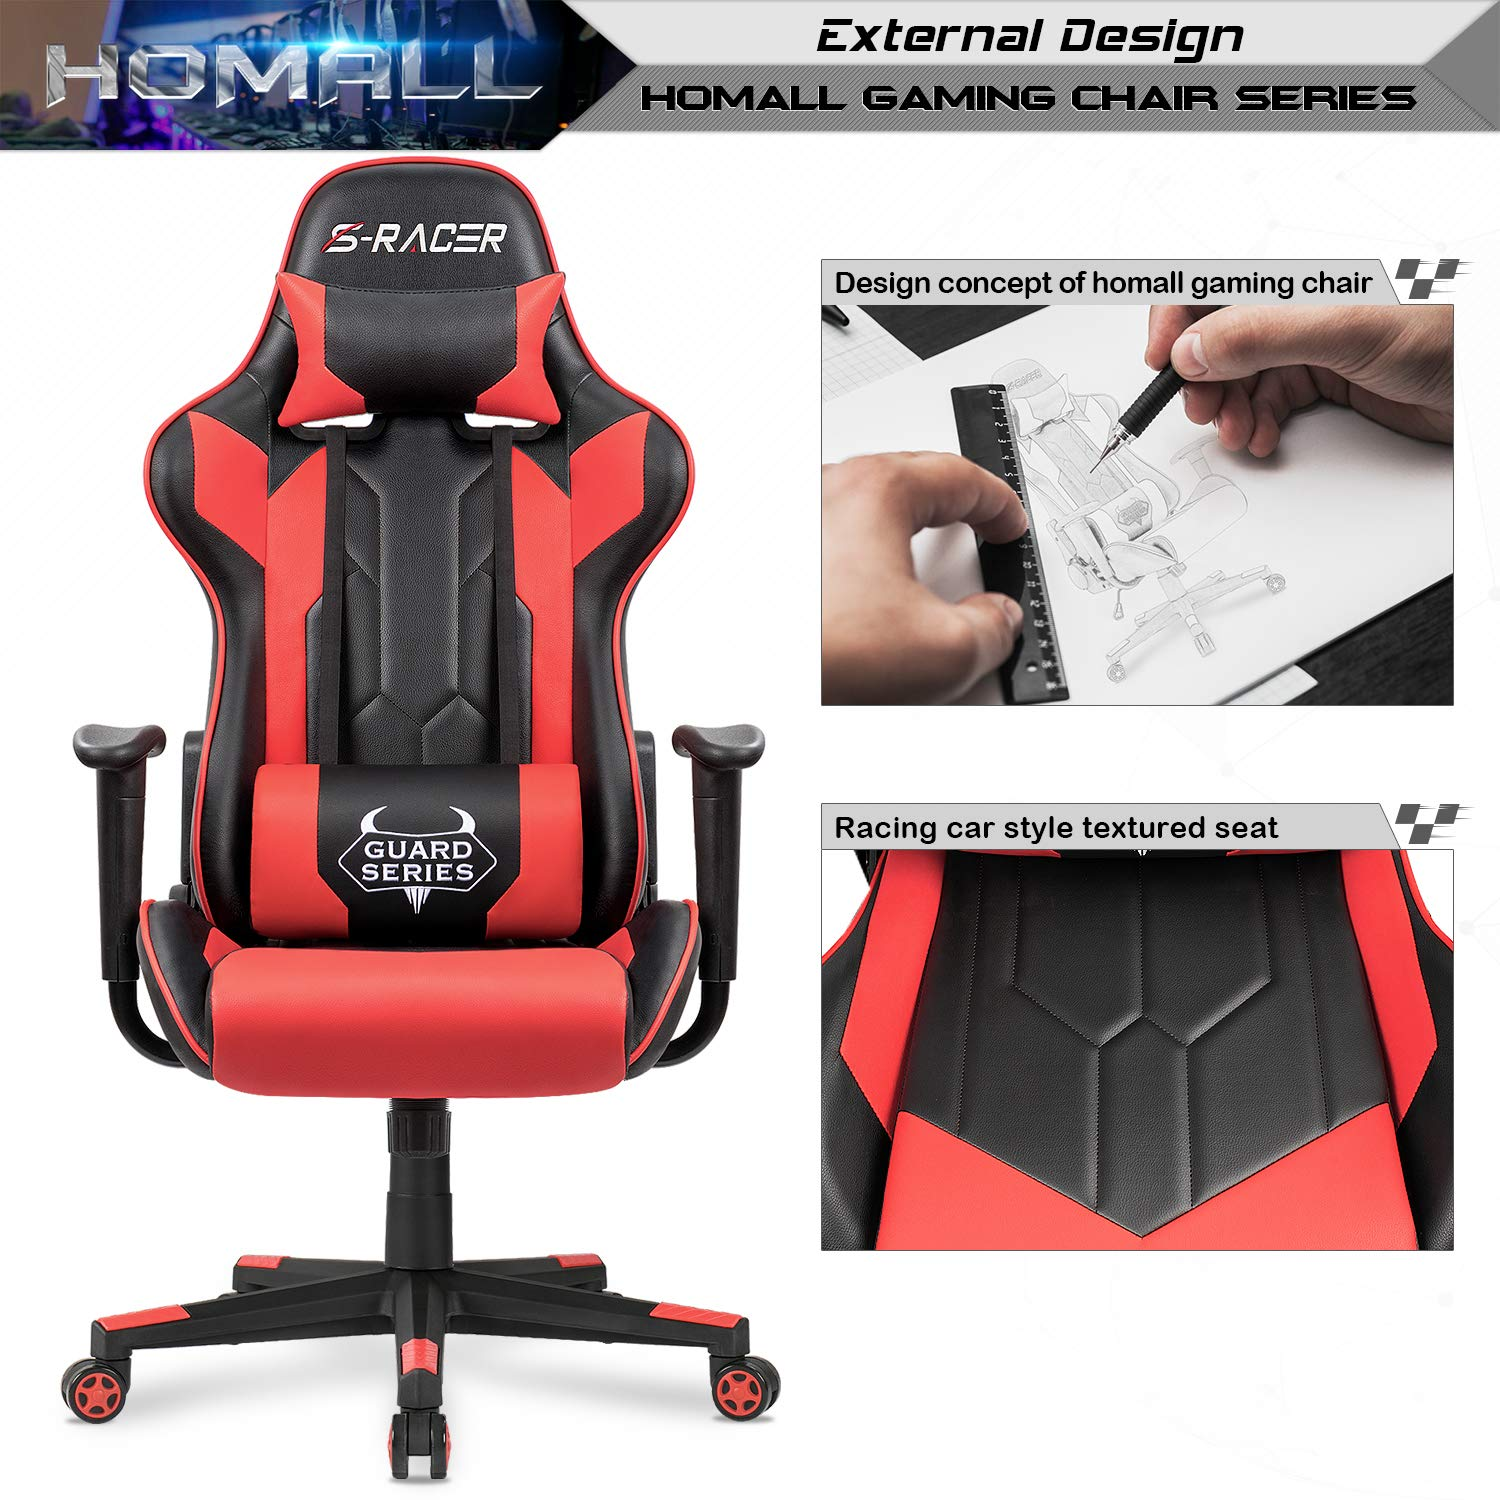 Homall Executive Swivel Leather Gaming Chair, Racing Style High Back Chair with Lumbar Support and Headrest (NSR/Red) by Homall (Image #4)